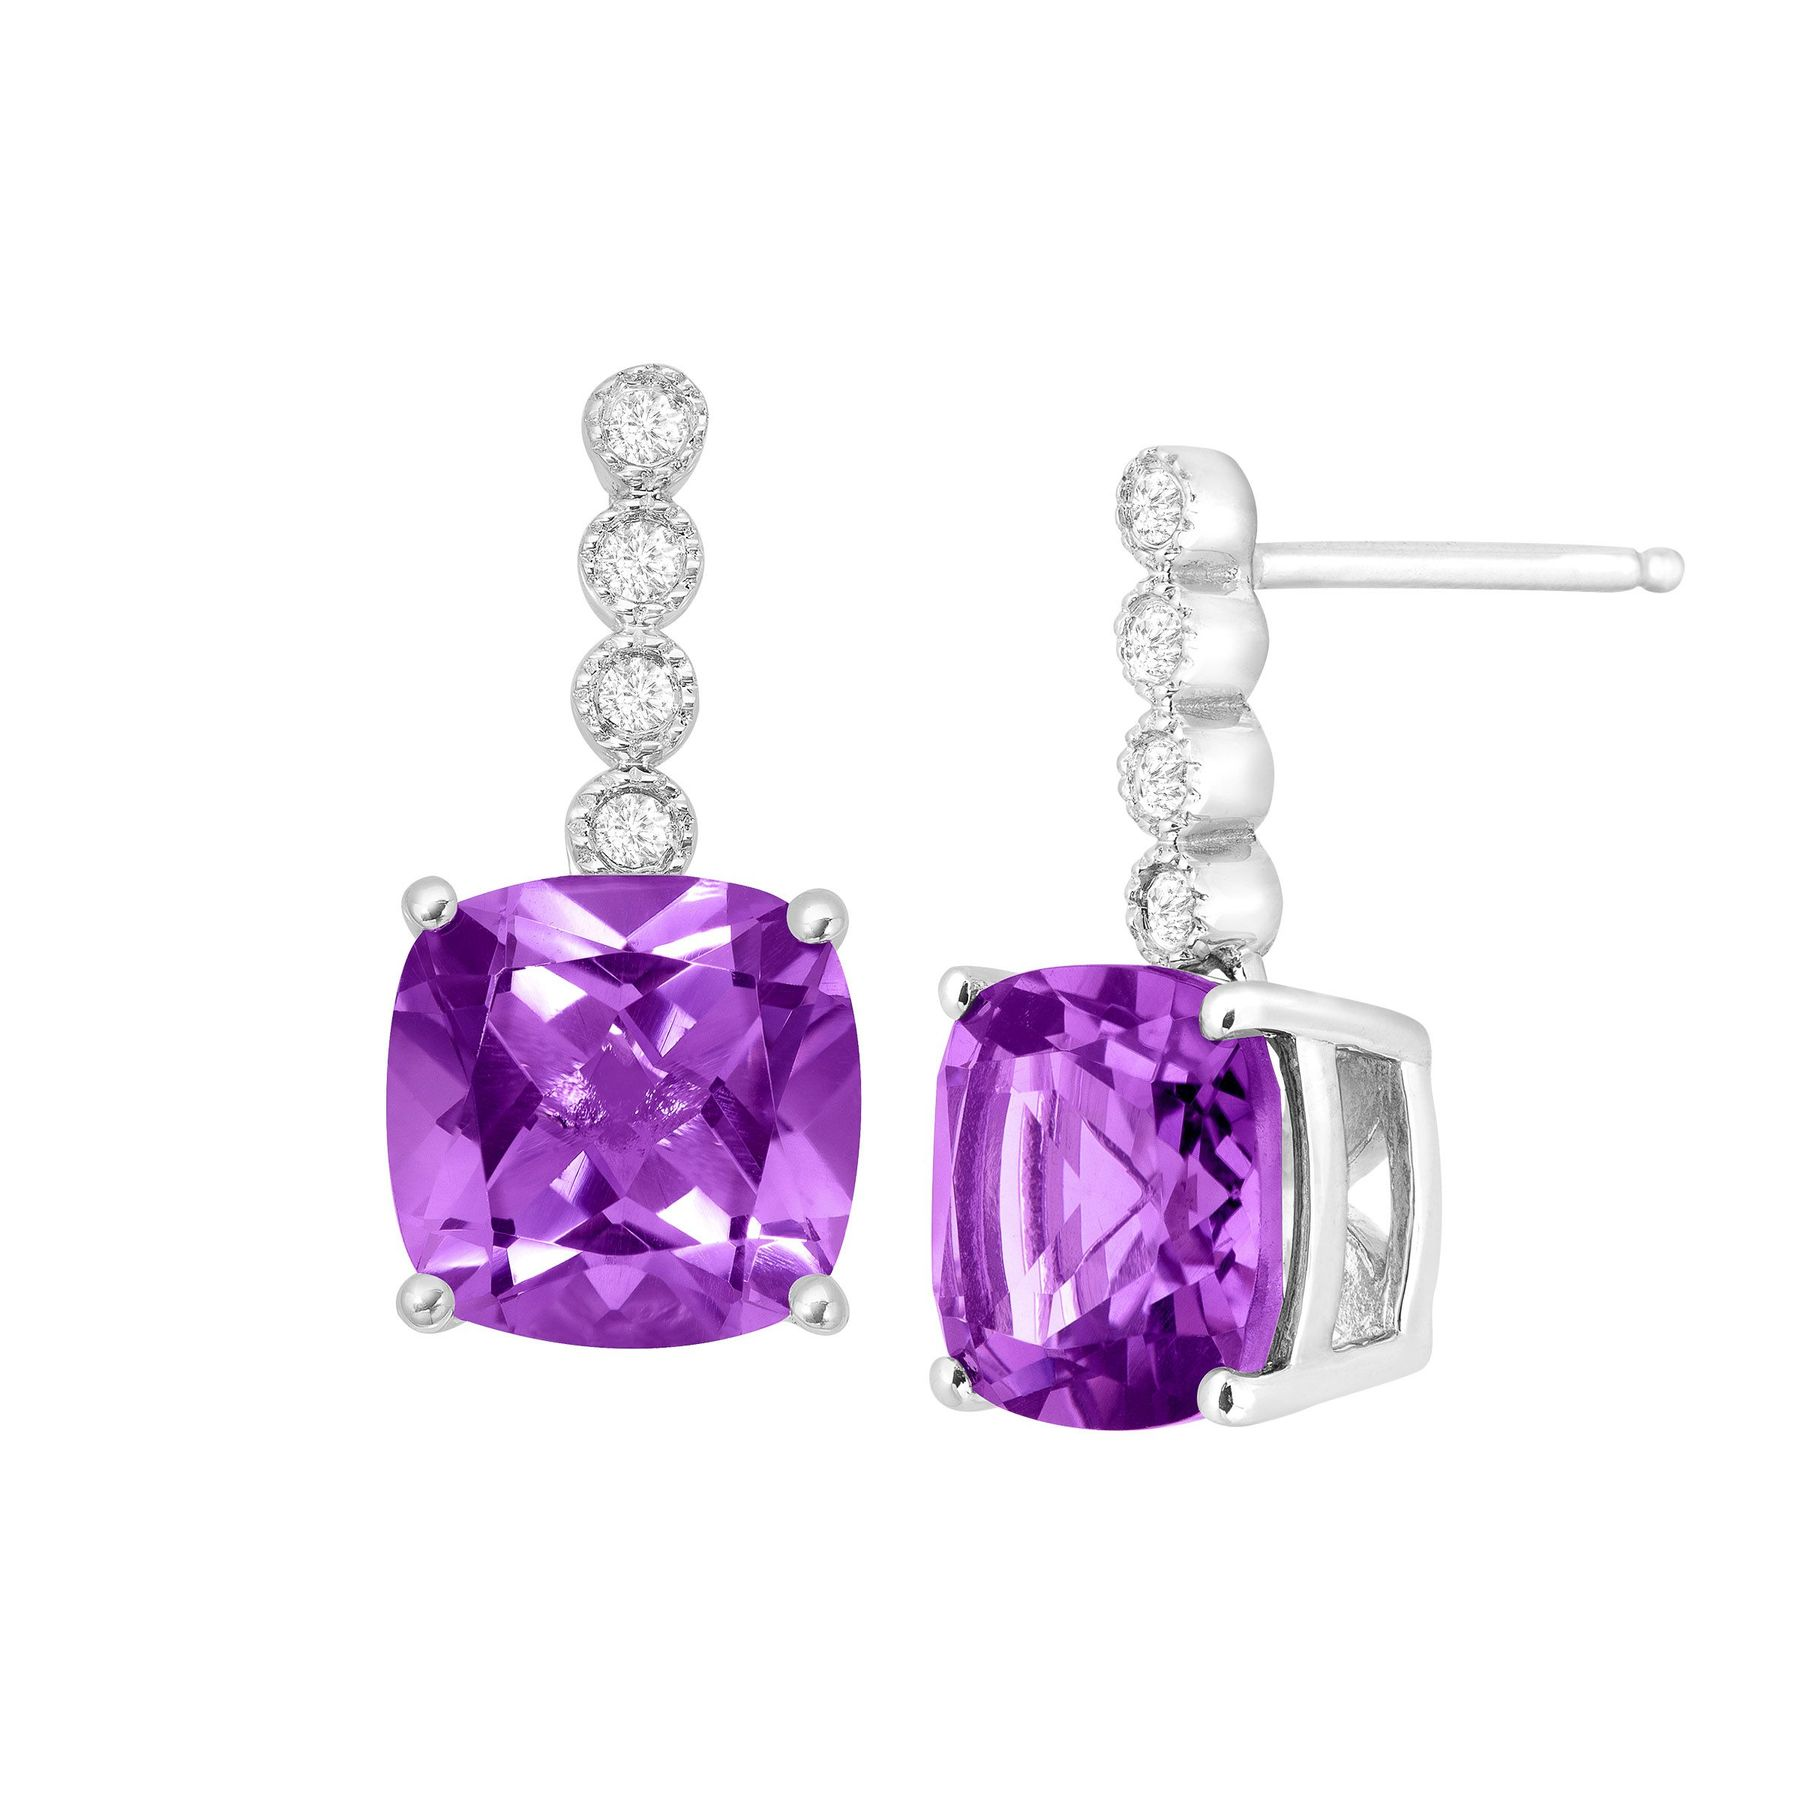 4 Ct Amethyst Drop Earrings With Diamonds